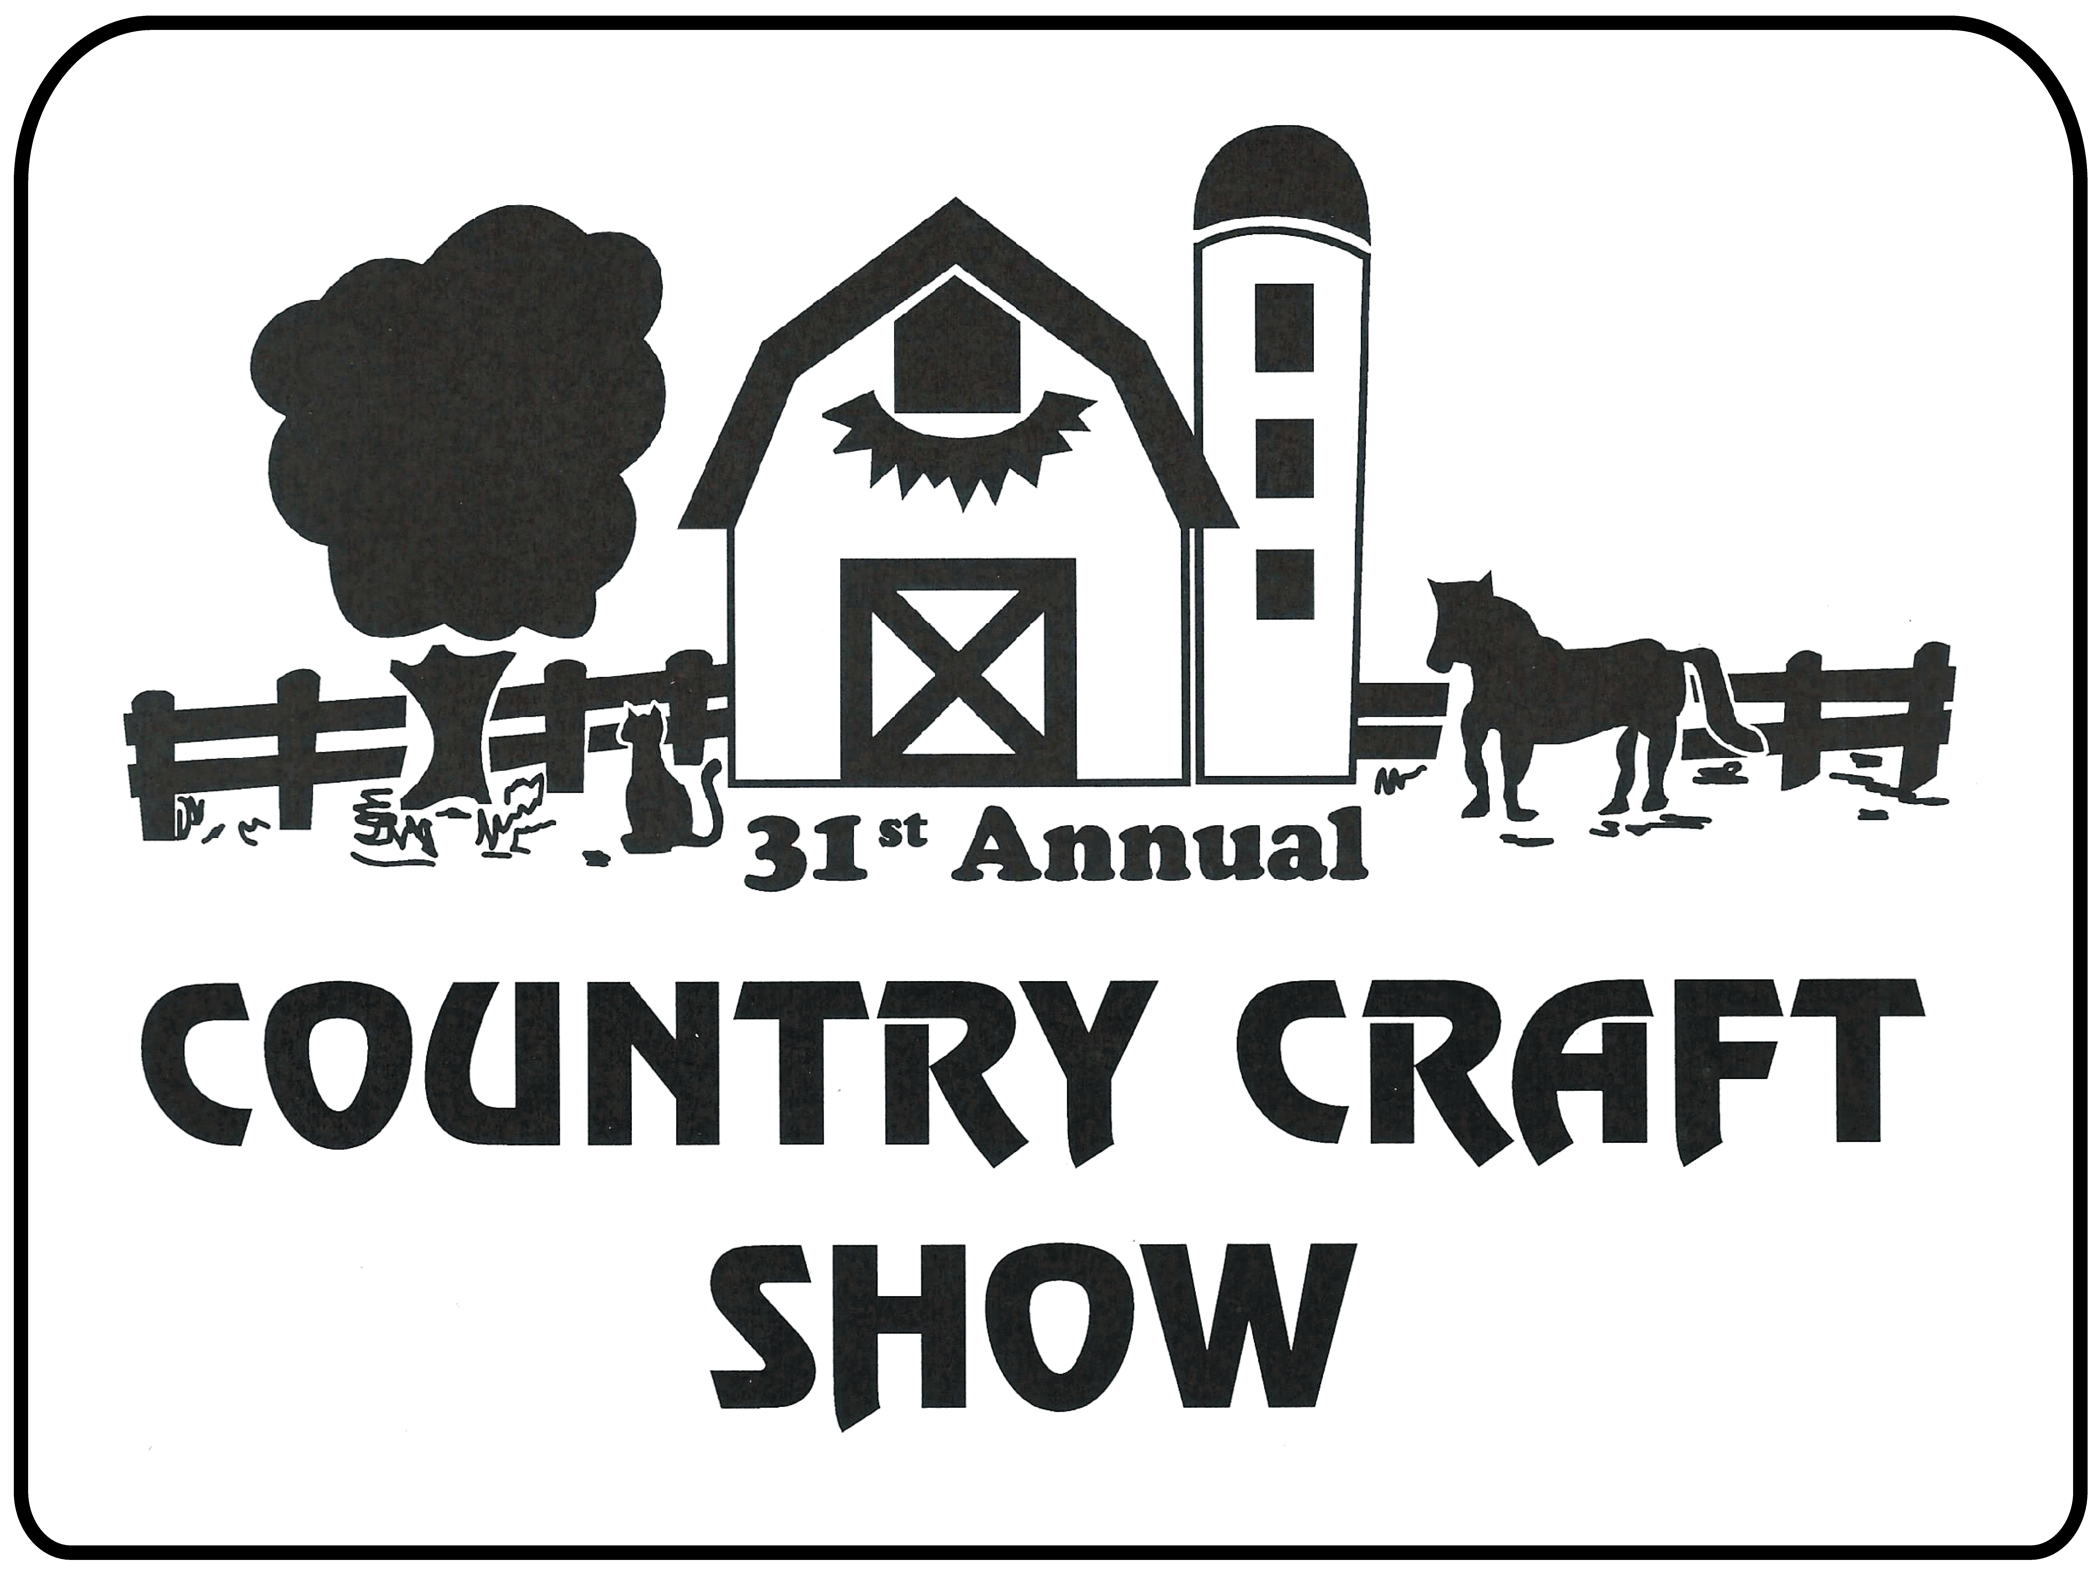 31st 20country 20craft 20show 20  20yoakum 202015